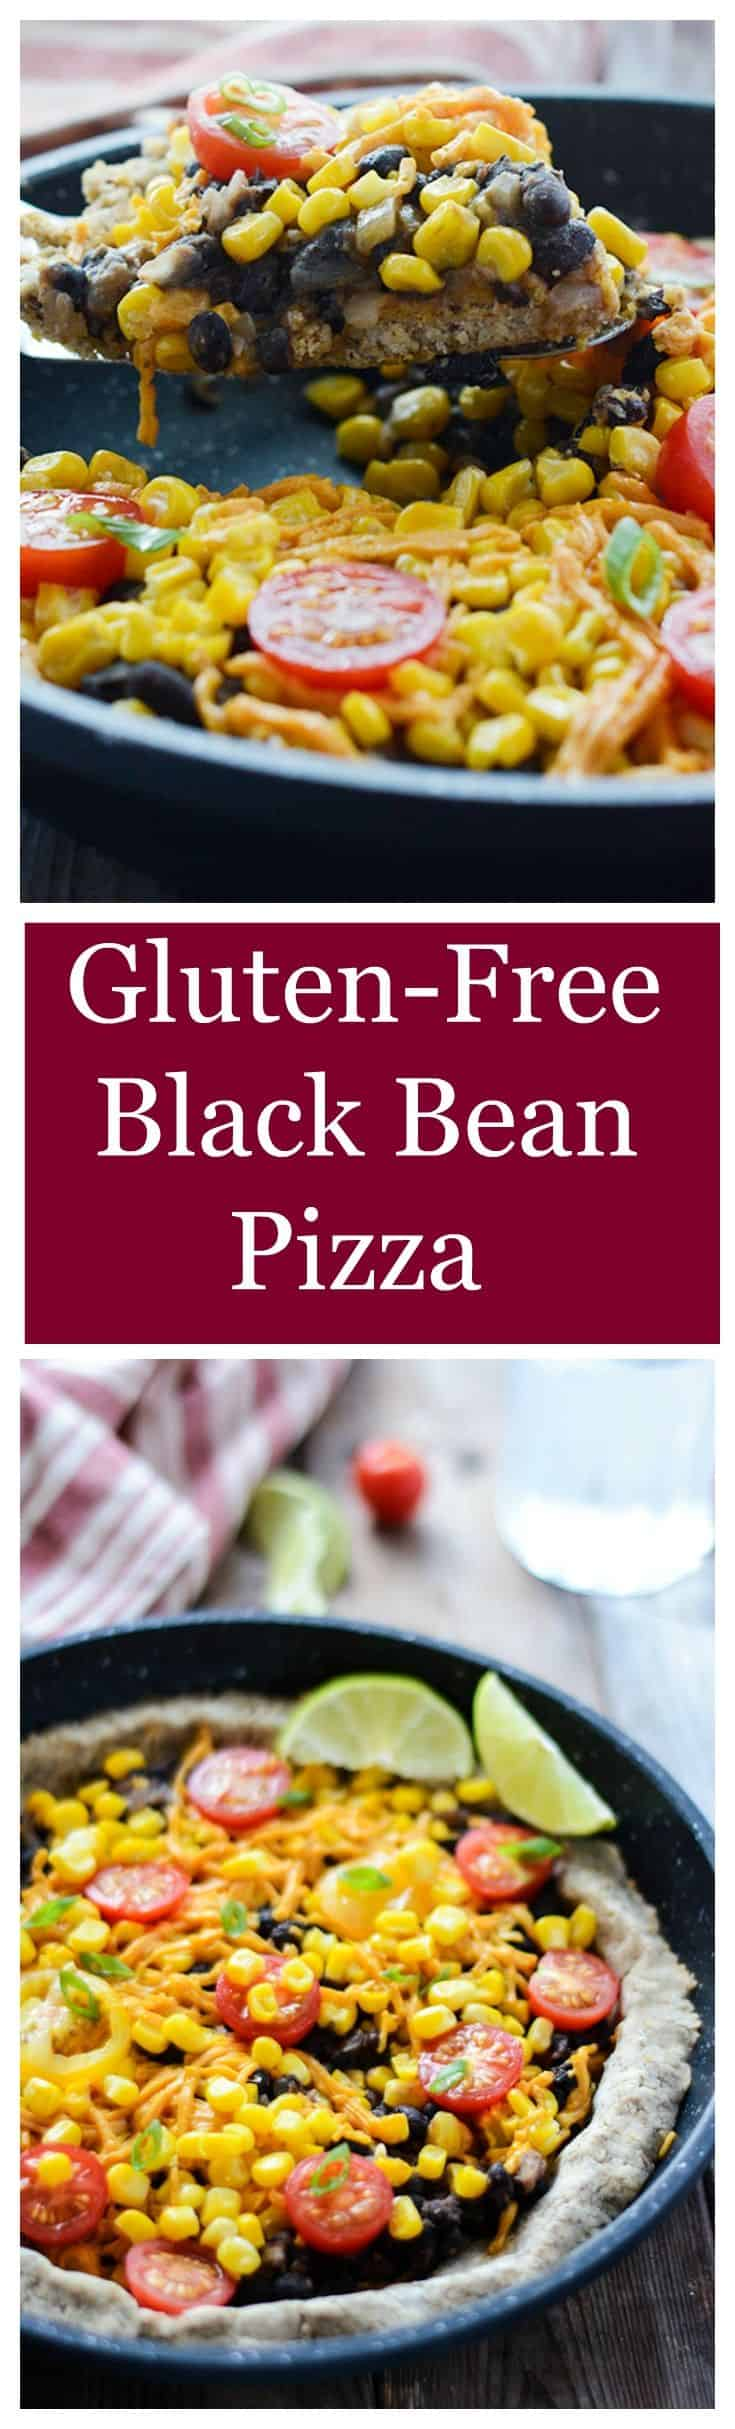 Gluten-Free Black Bean Pizza